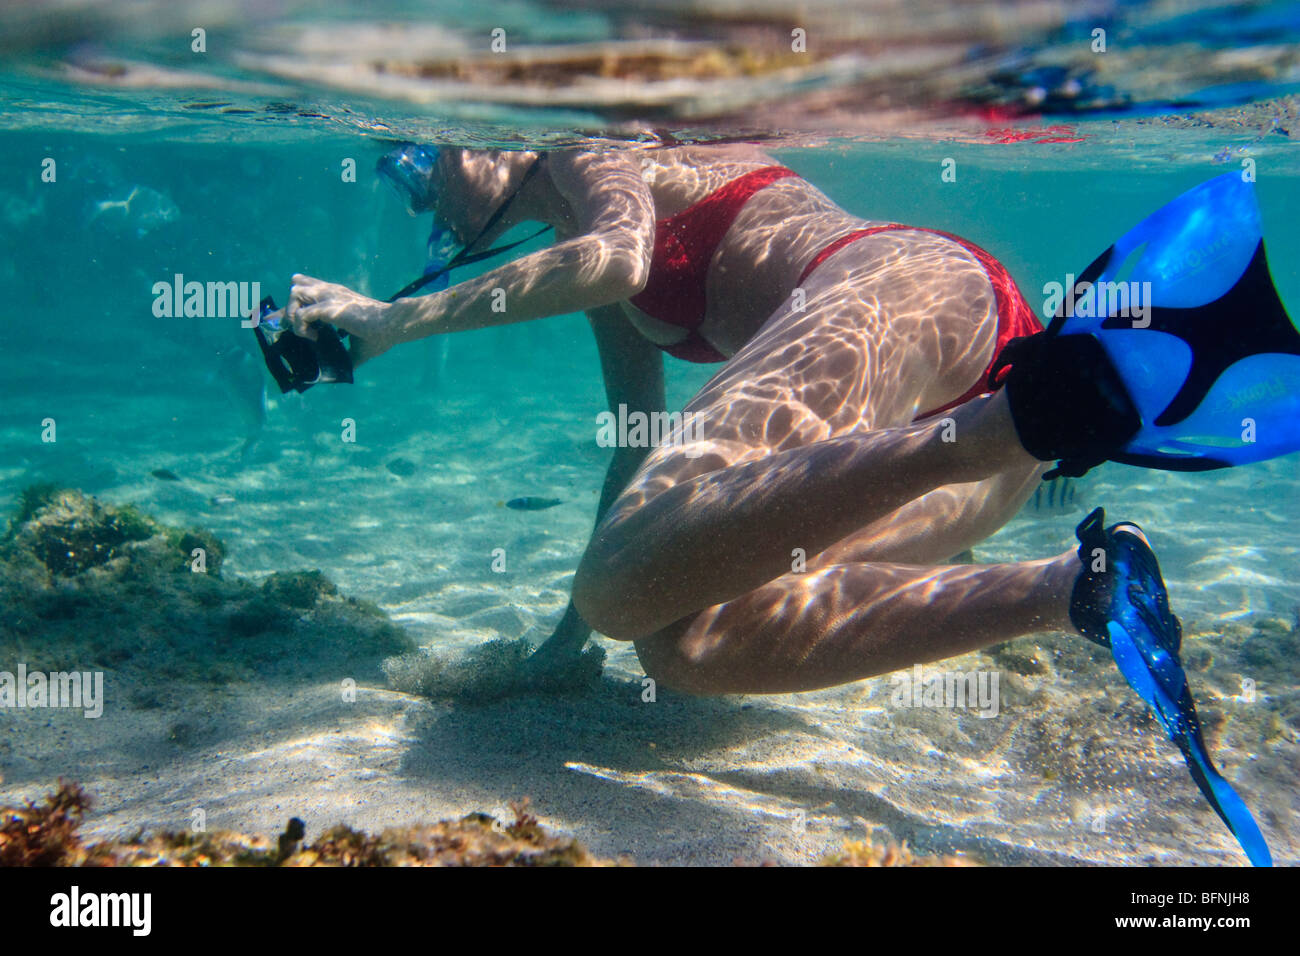 Perfect Snorkeling Young Woman Holds Onto The Sandy Ocean Floor As She Tries To  Steady Herself And